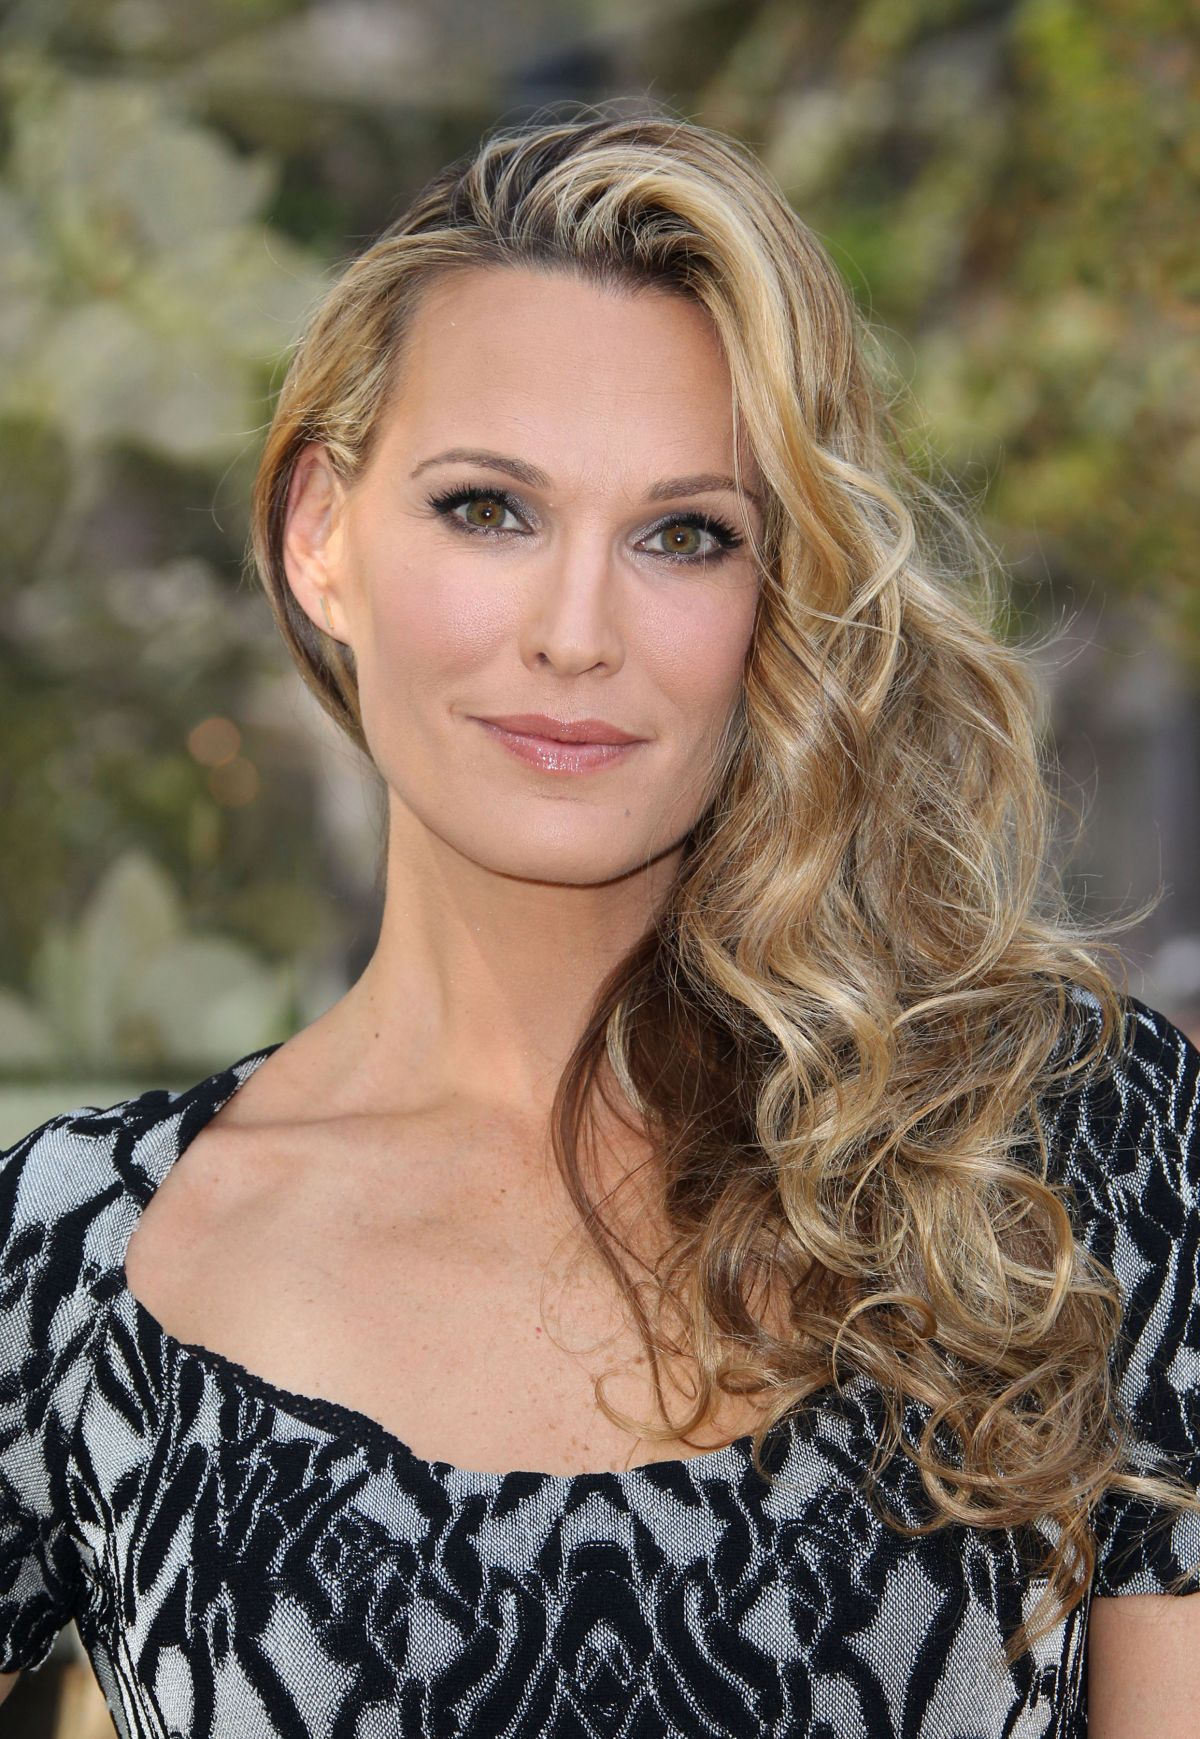 Celebrity Molly Sims nudes (27 photos), Pussy, Leaked, Selfie, braless 2015